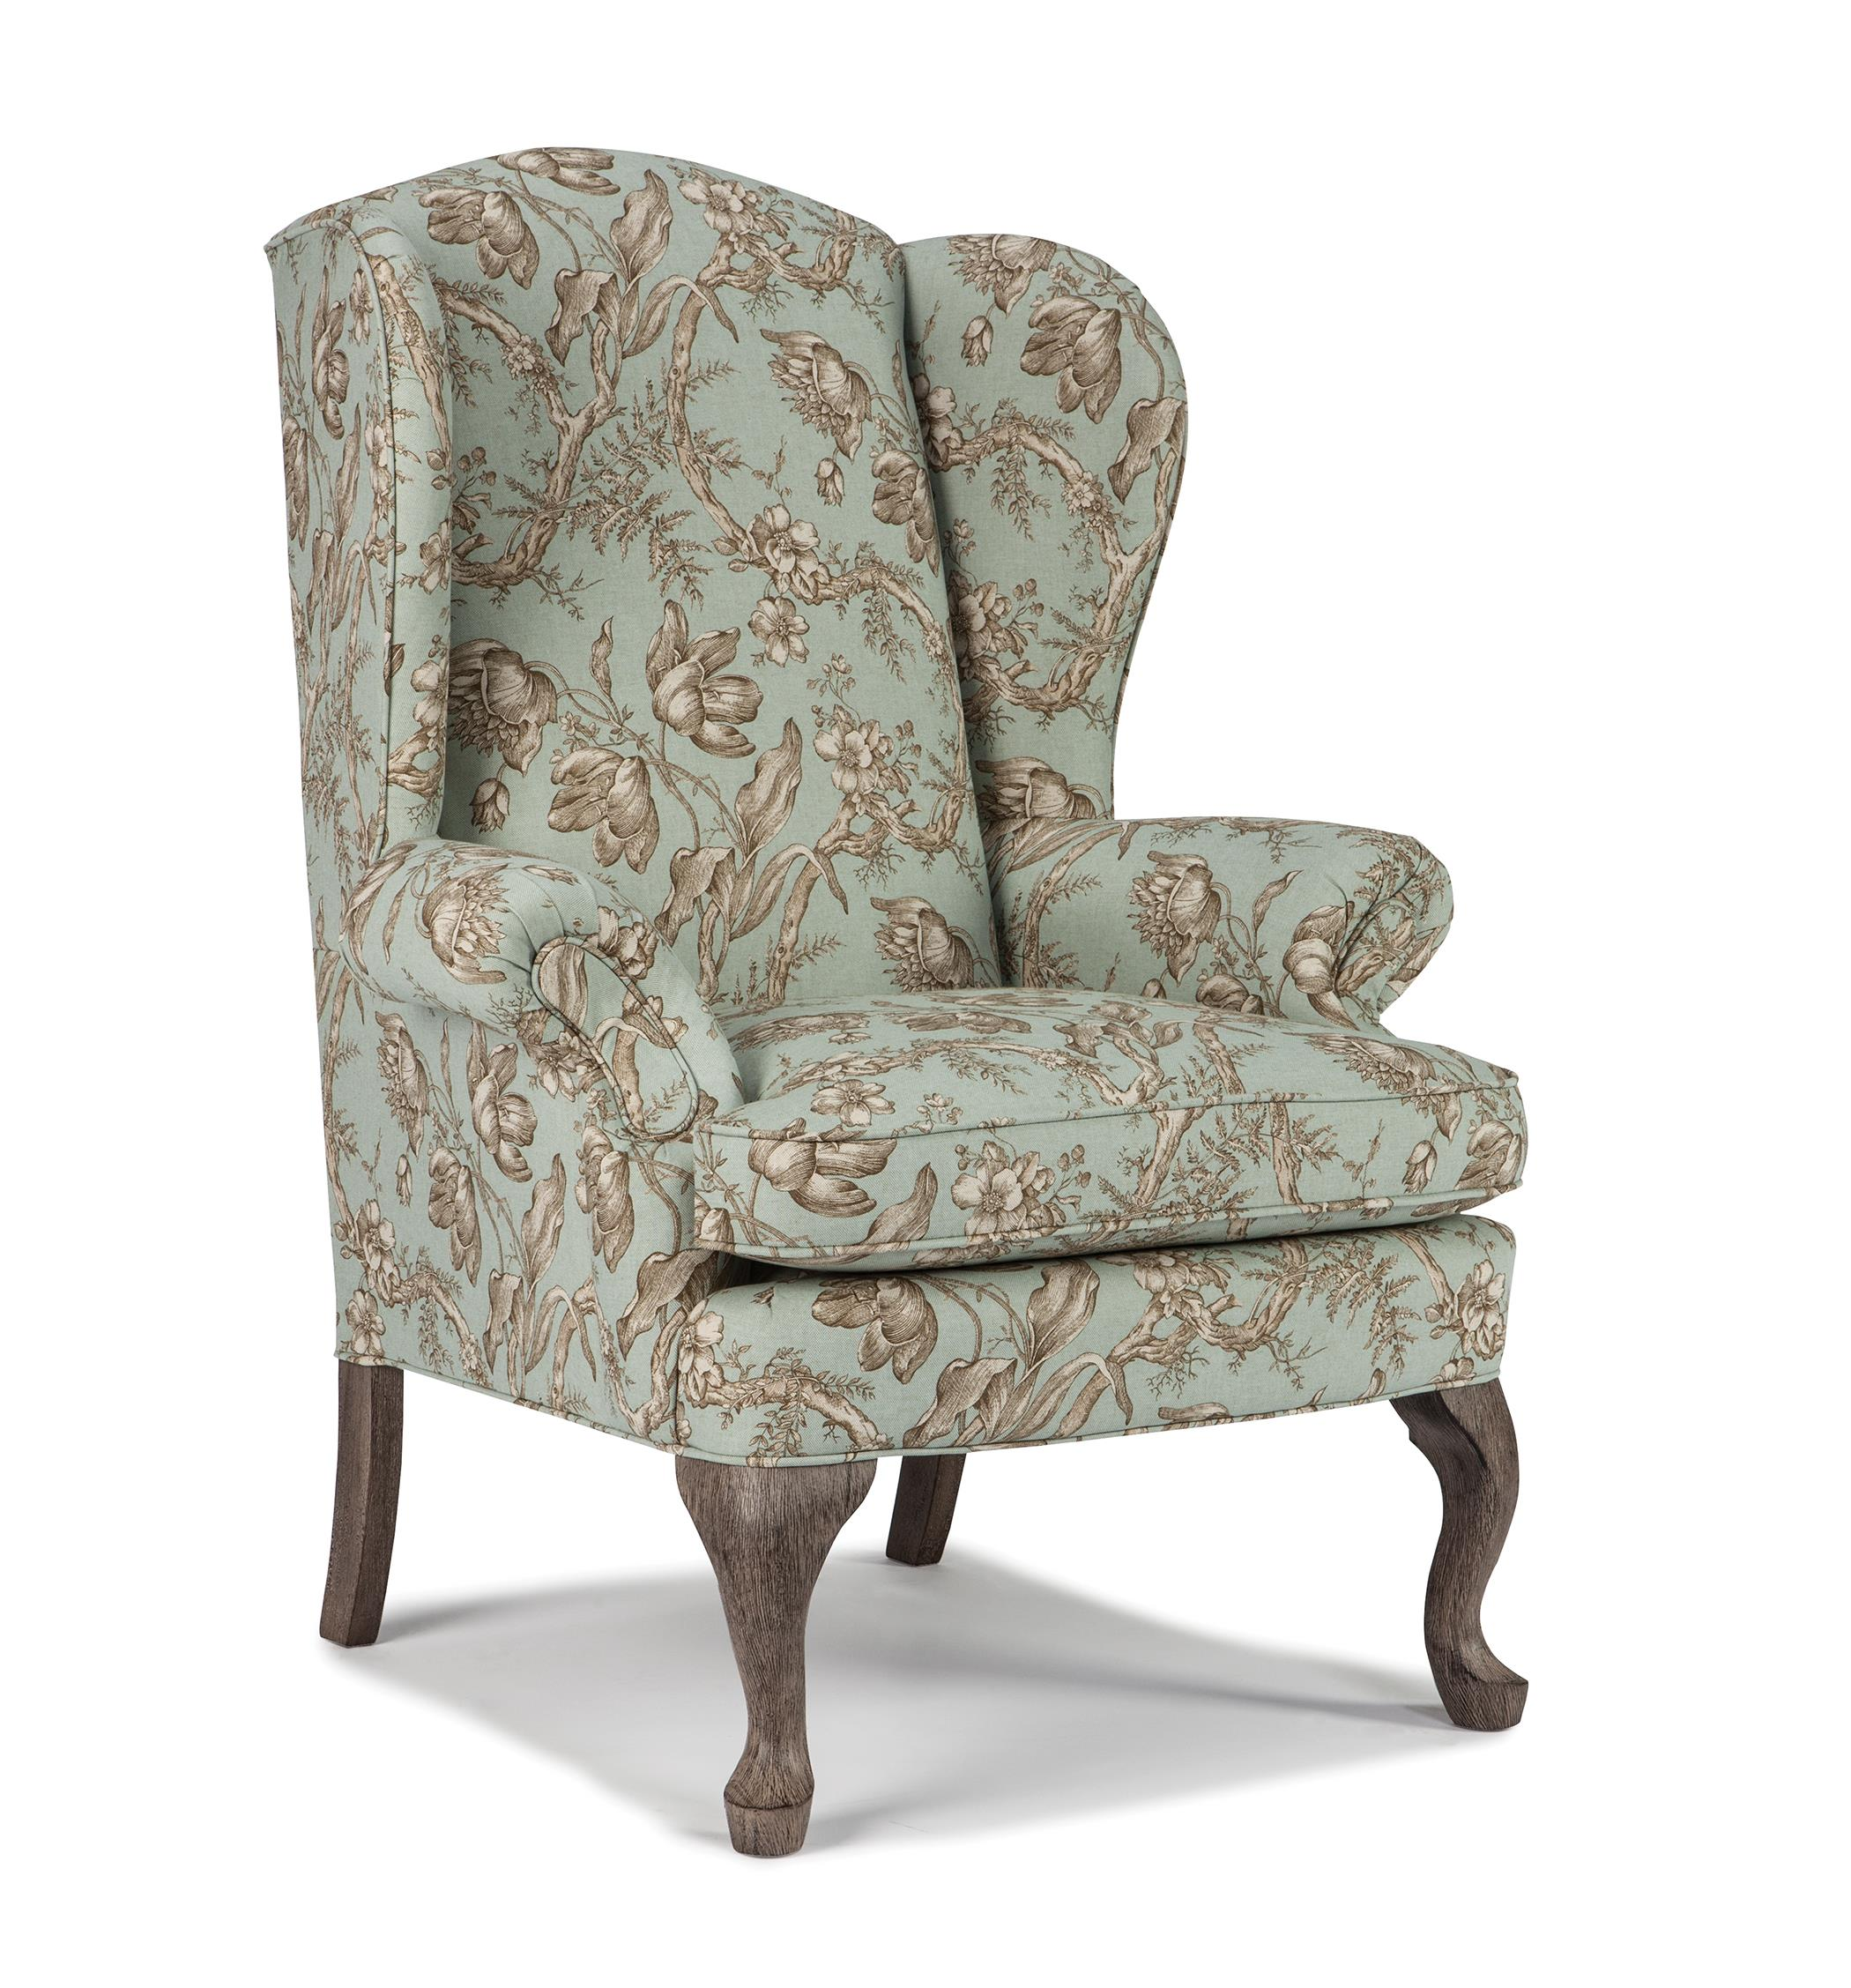 Wing Chairs Sylvia Wing Chair by Best Home Furnishings at Best Home Furnishings